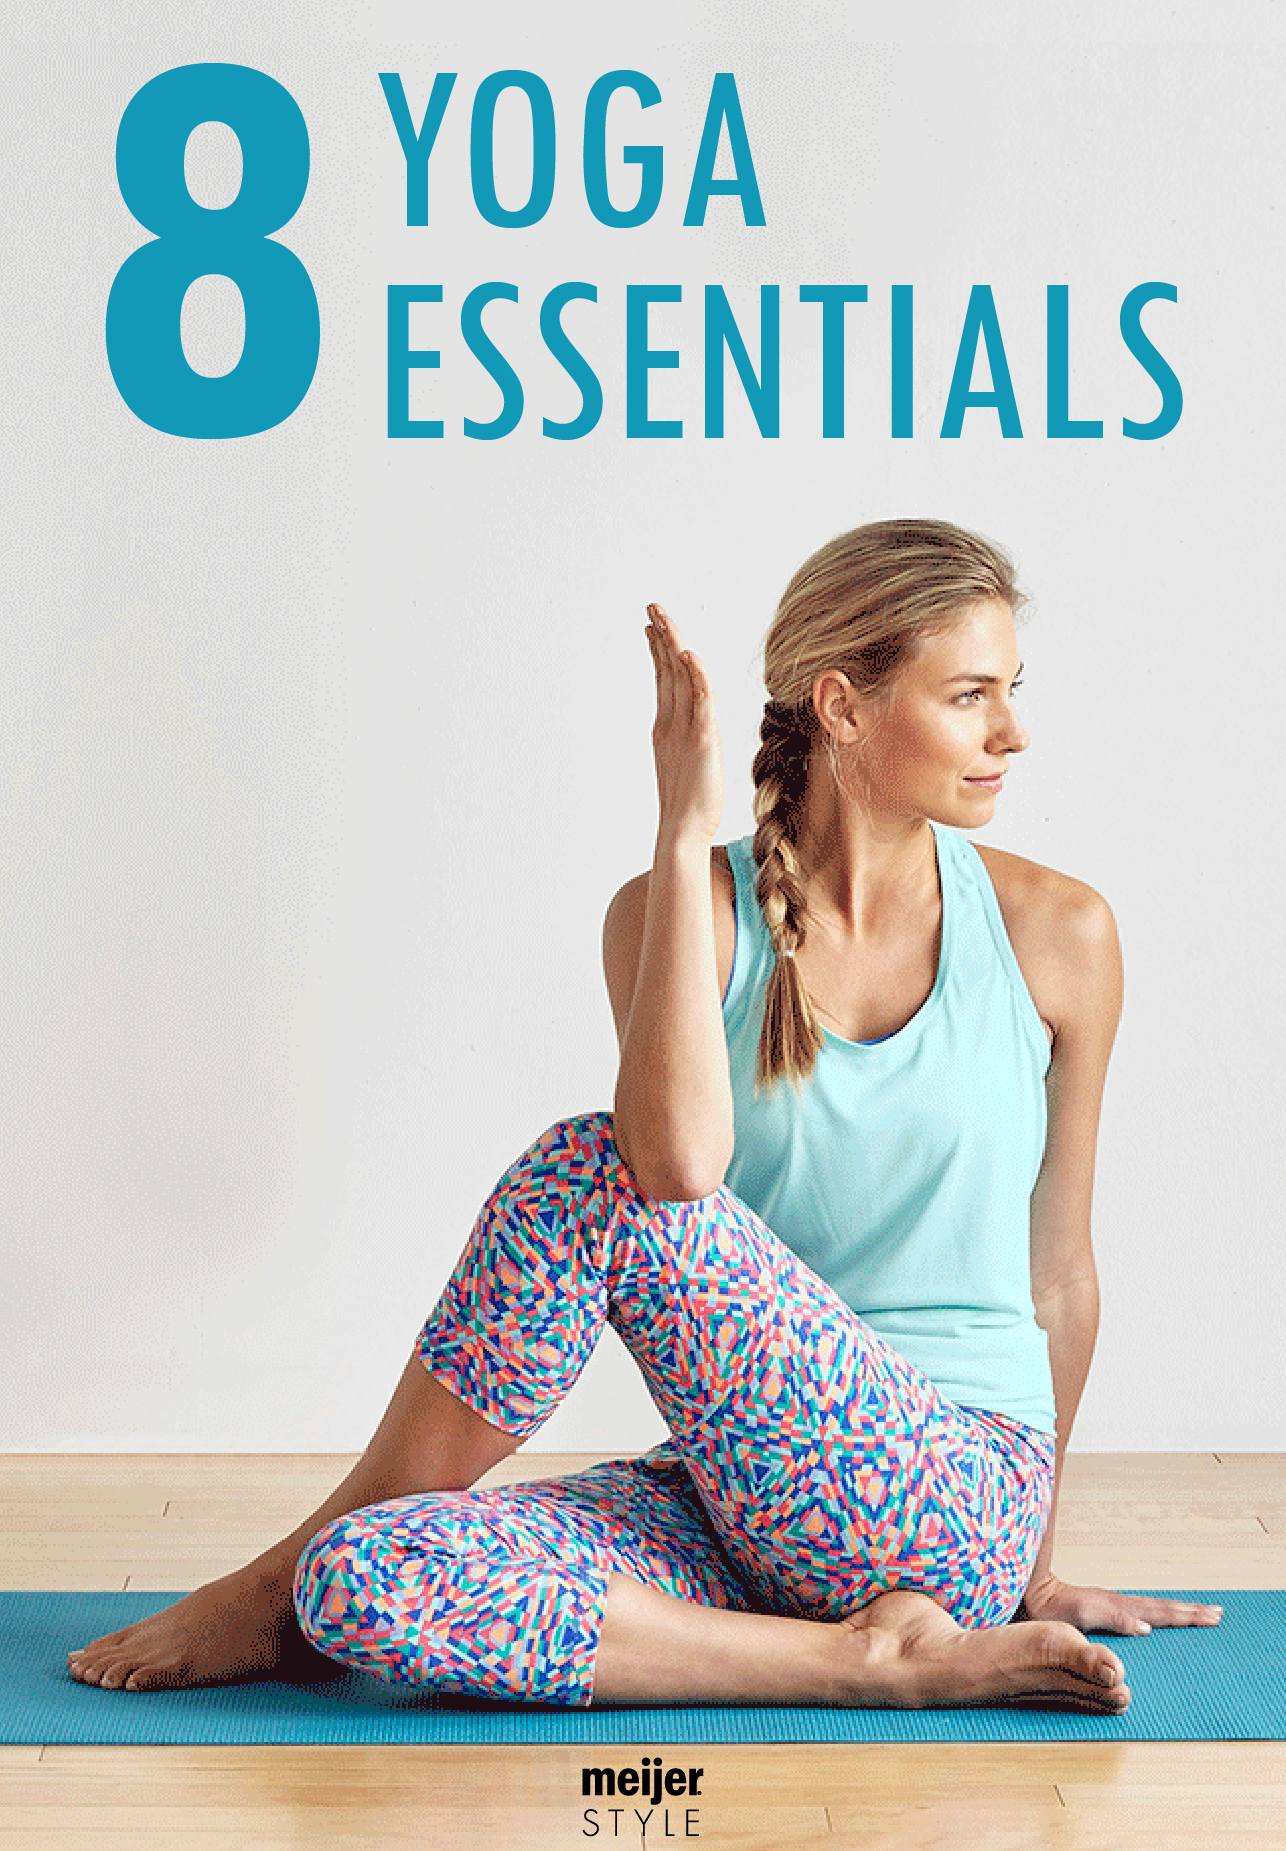 If You Re Looking For Cute Yoga Clothes Make Sure You Add These 8 Essentials To Your Bag Before Your Next Practice Meijerstyle Fitness Fashion Fitness F